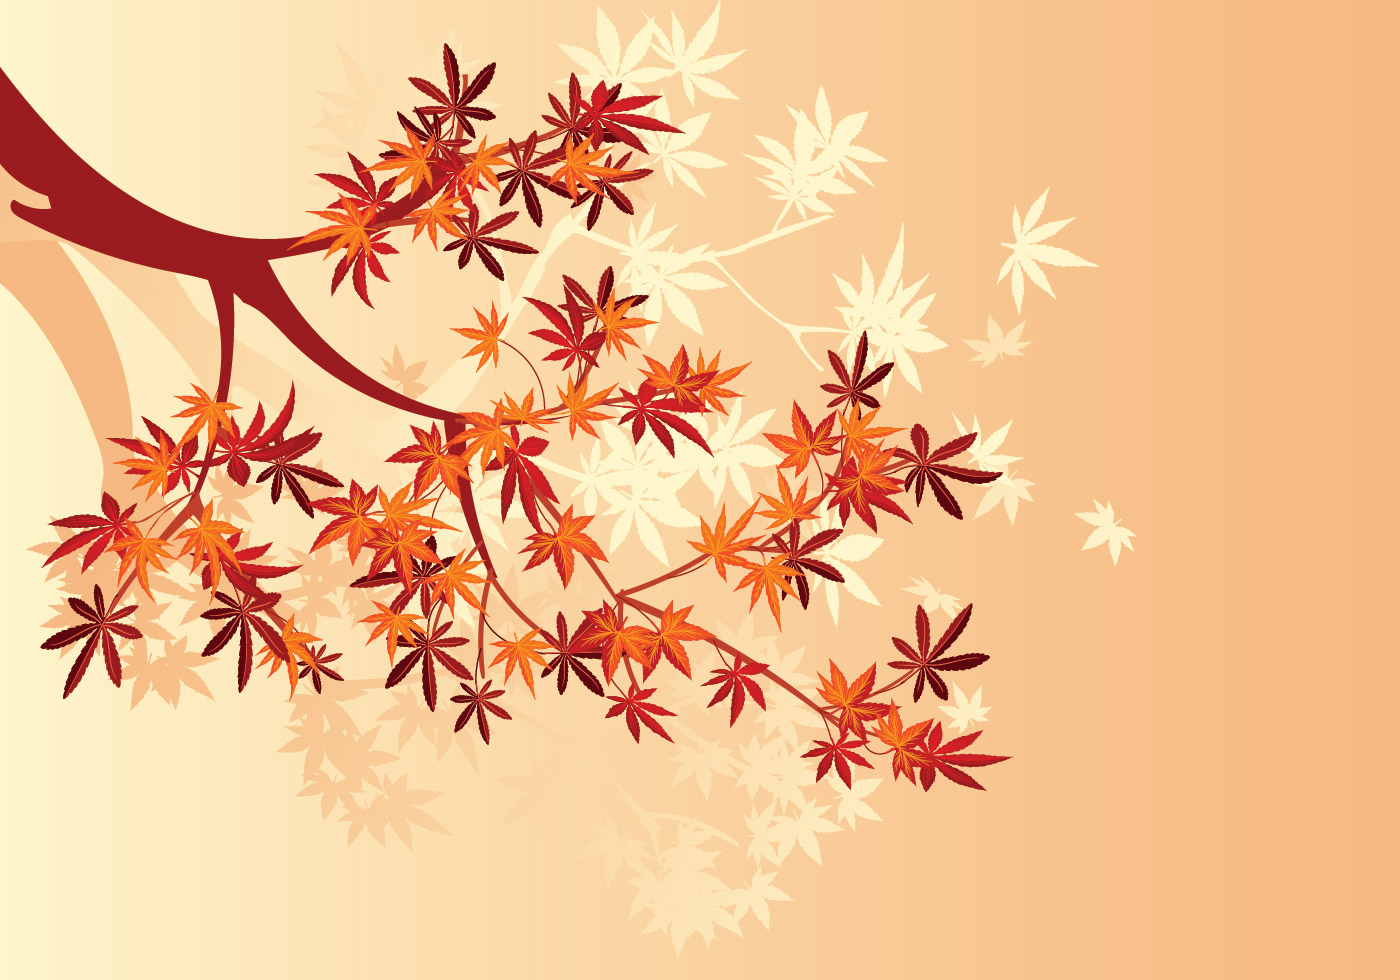 Smooth Japanese Maple Plant And Fall Maple Leaves Background